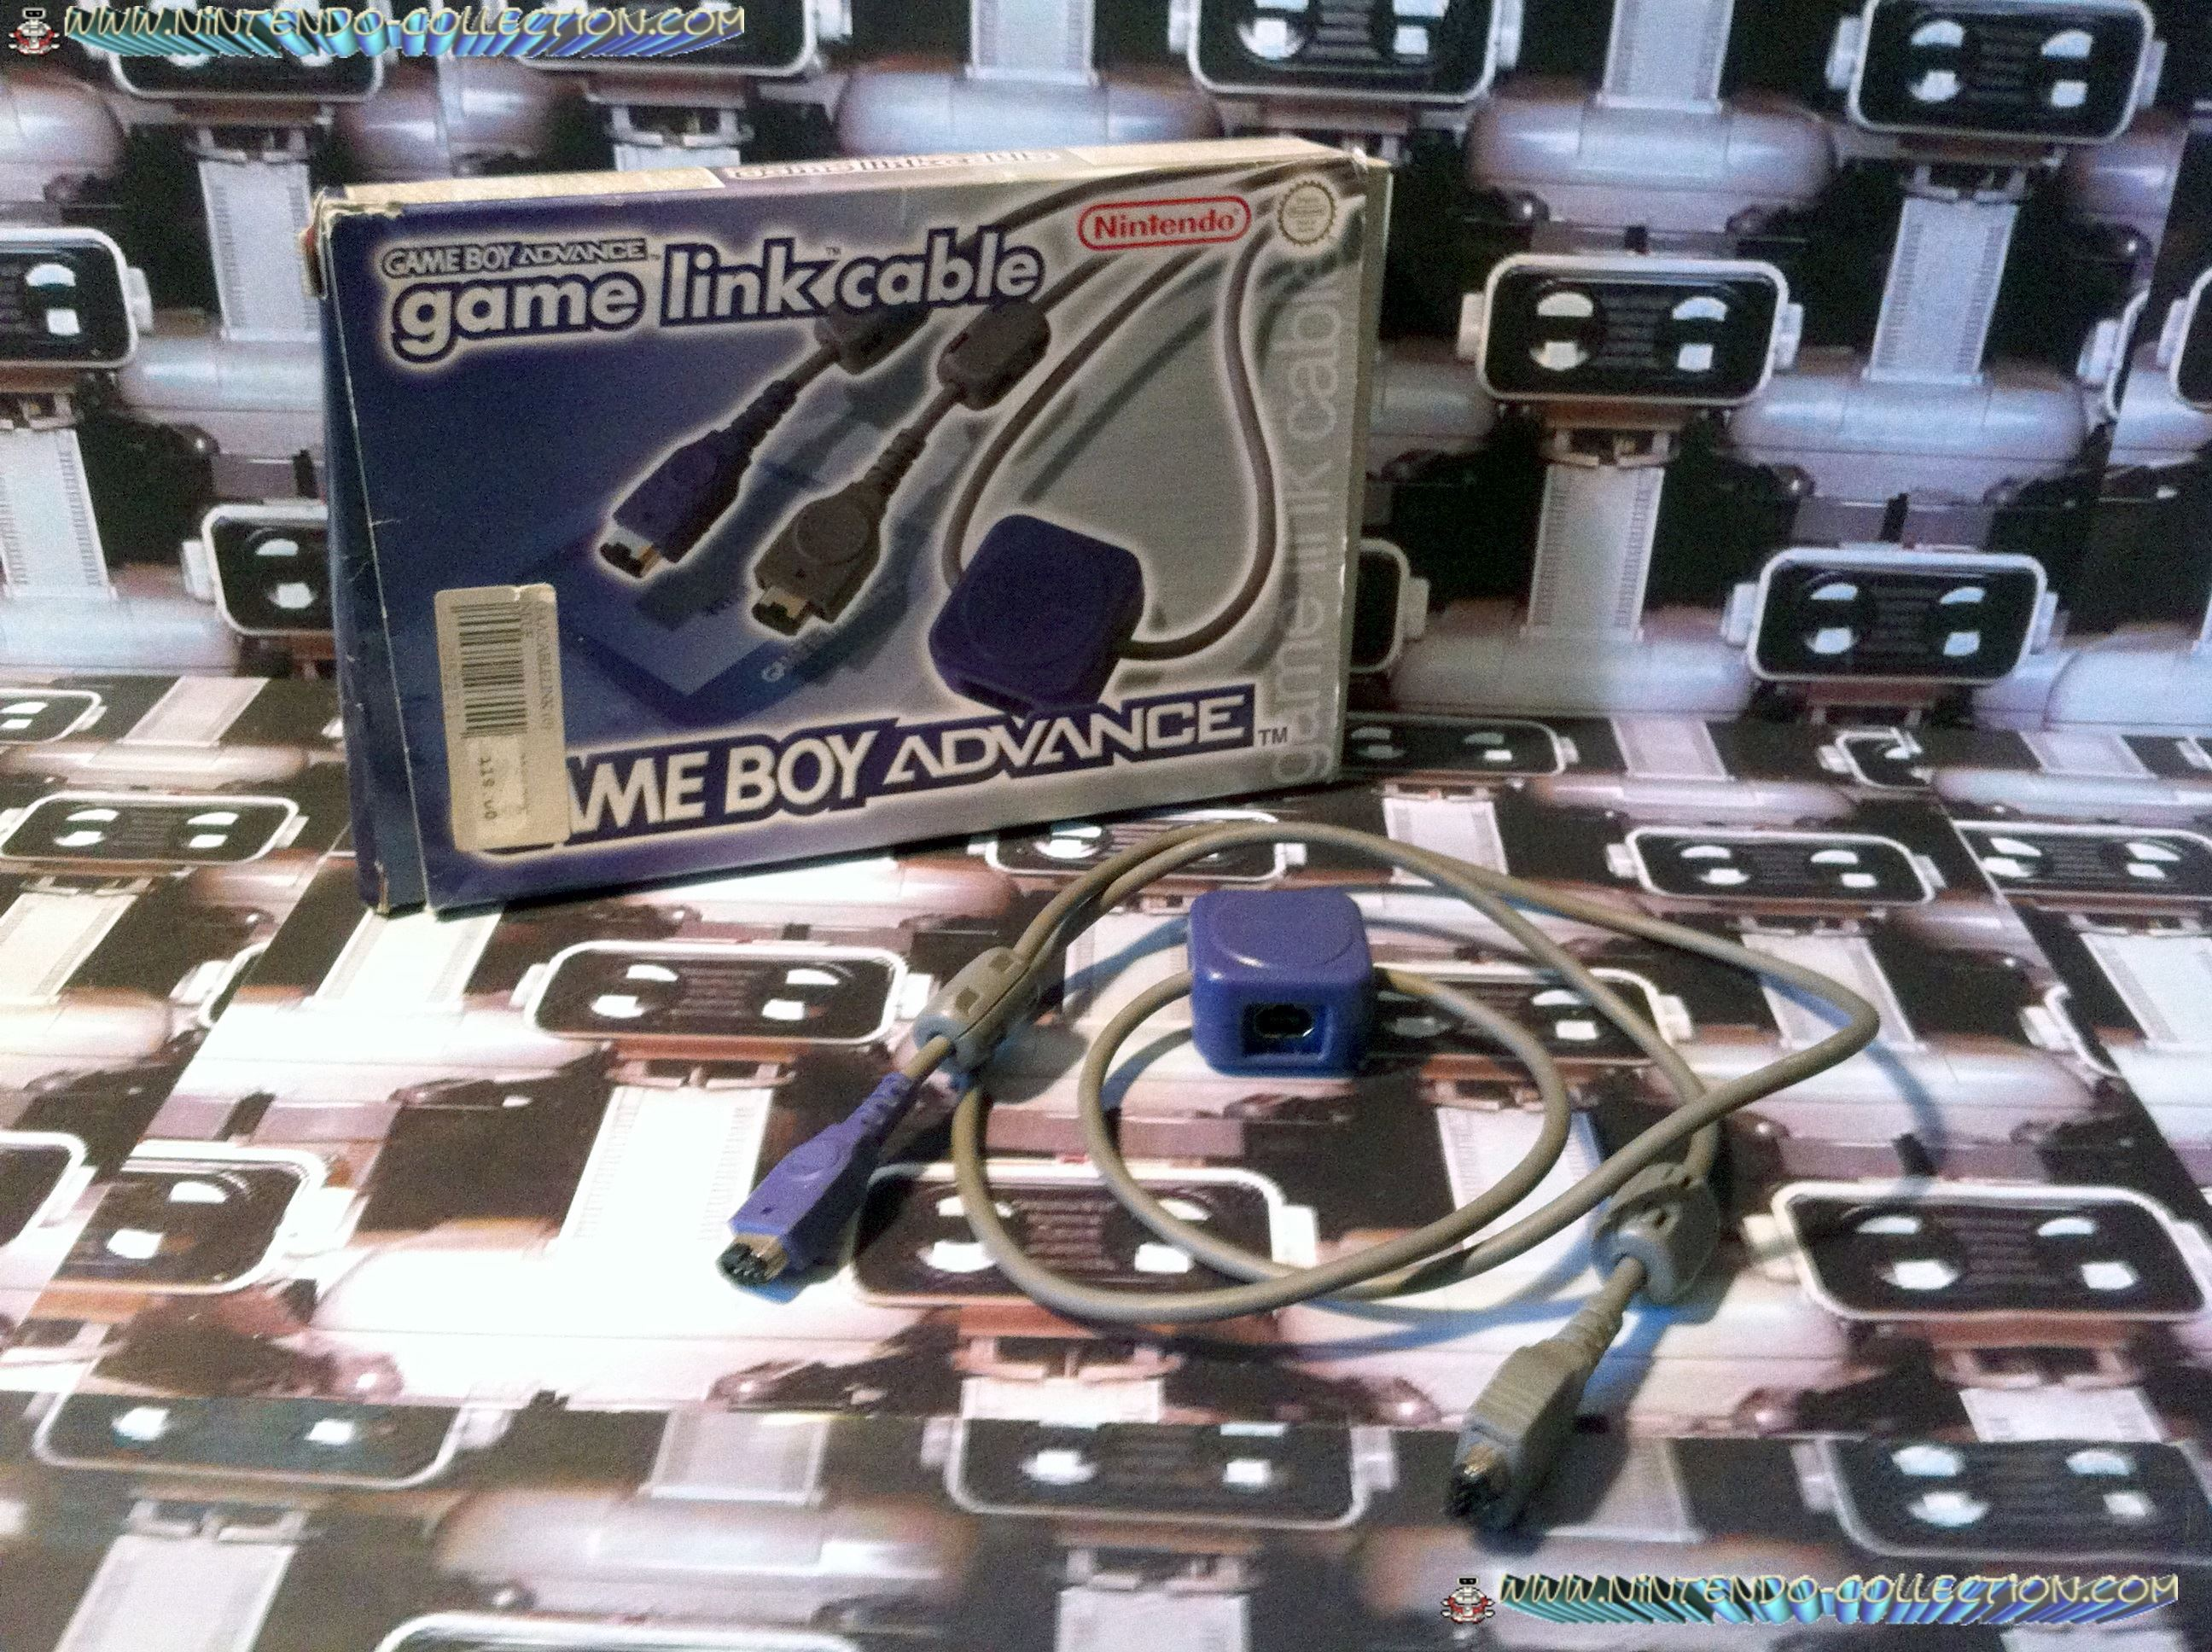 www.nintendo-collection.com - Gameboy Advance SP Accessory Accessoire Cable Link Game Link